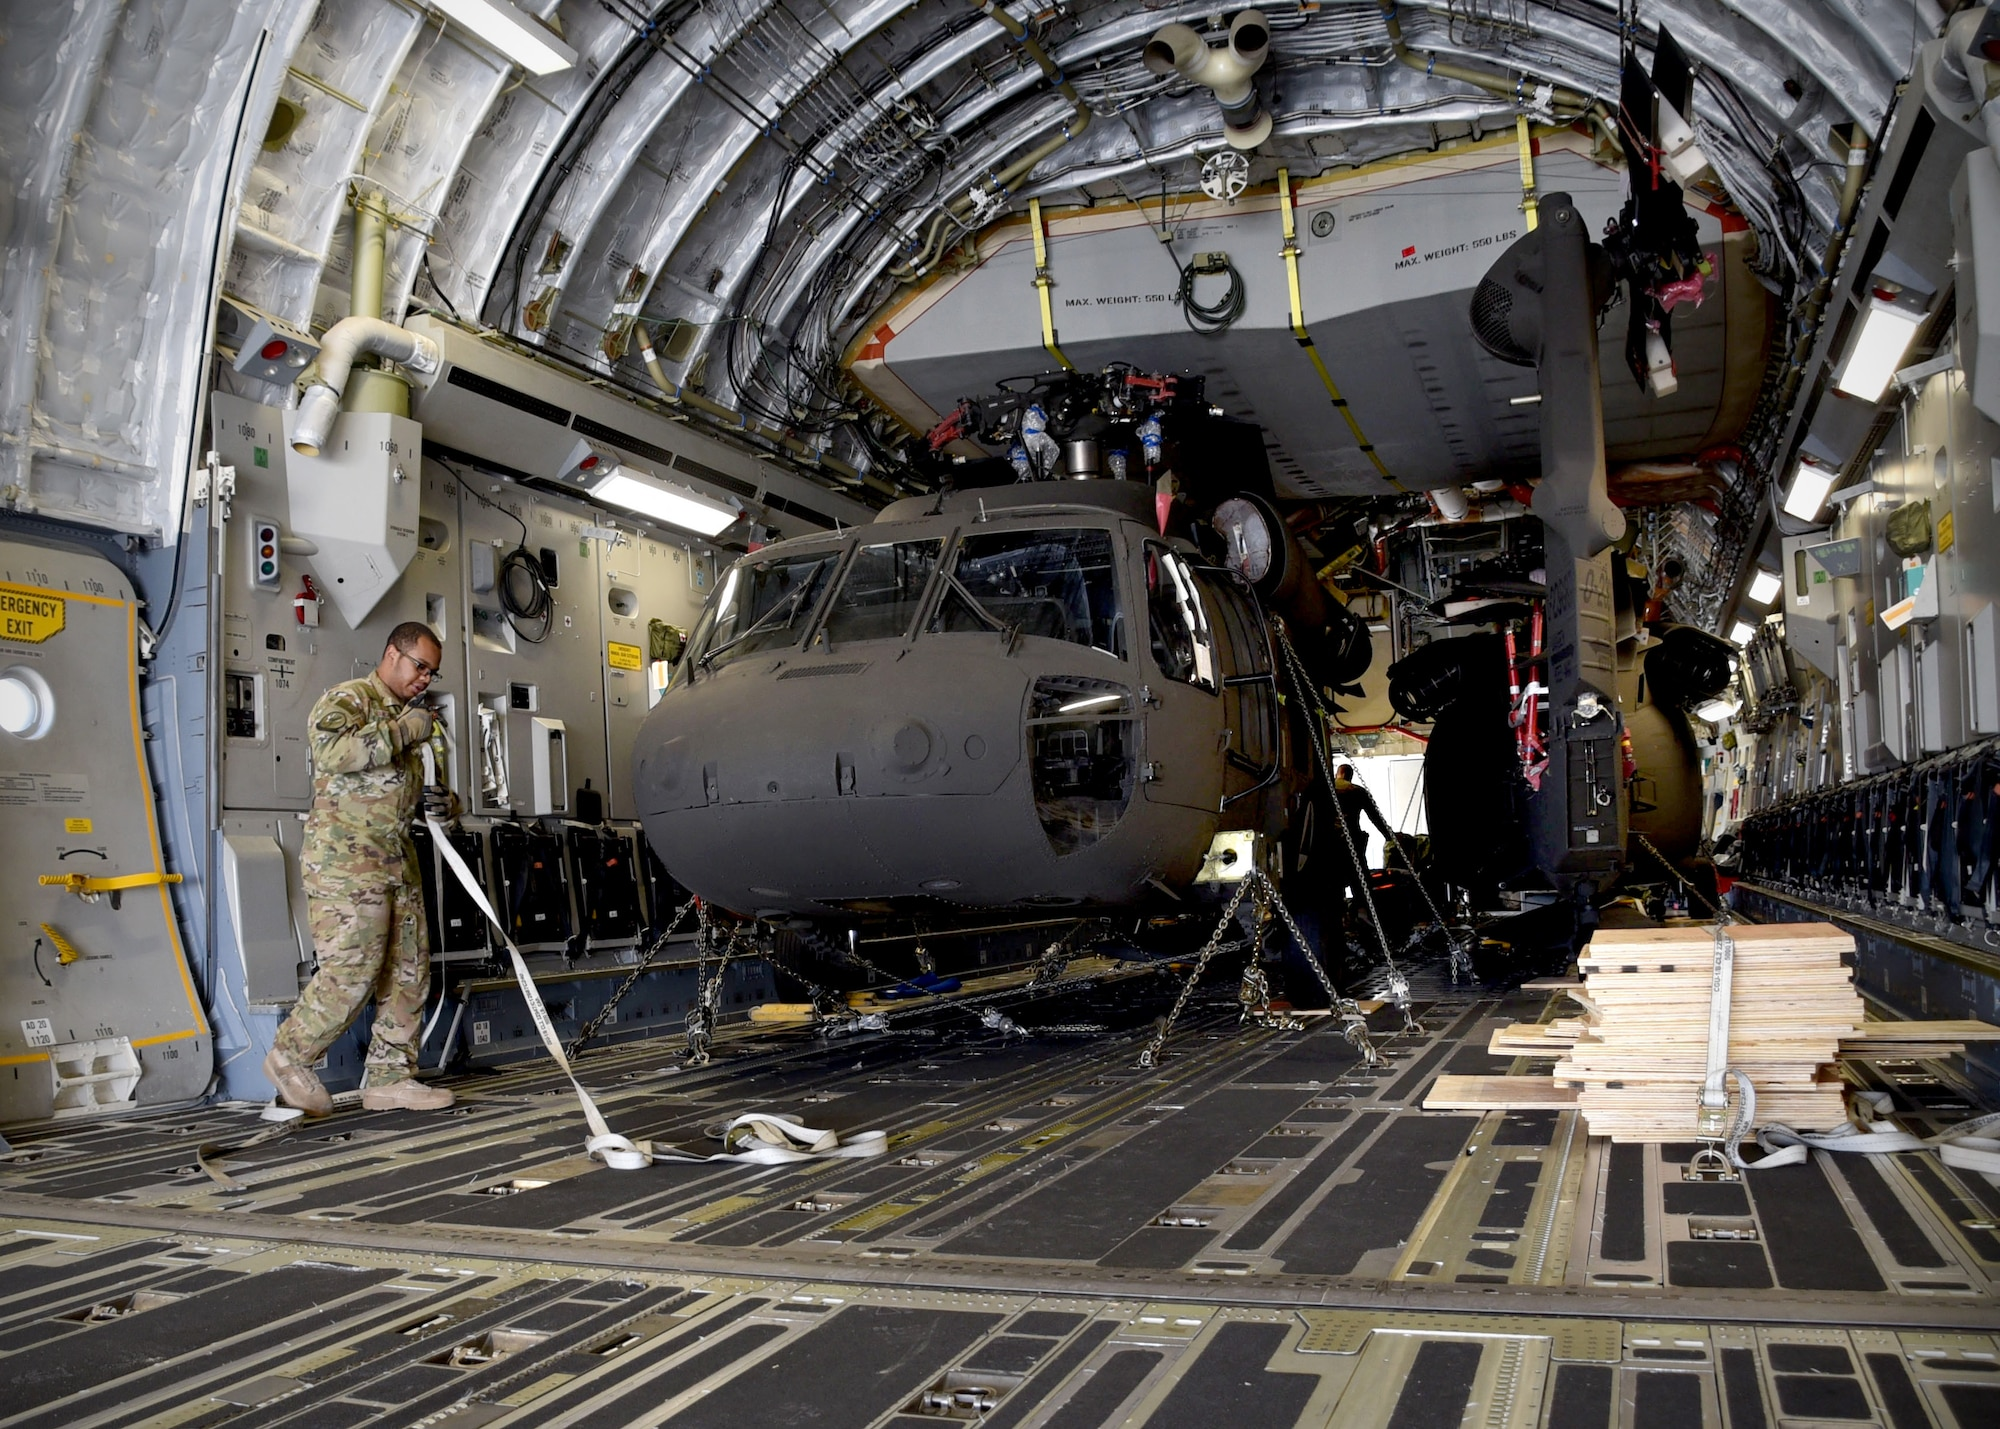 A U.S. Air Force C-17 loadmaster assigned to Charleston Air Force Base, S.C., prepares two Afghan Air Force UH-60 helicopters for unloading Sept. 18, 2017, at Kandahar Air Field, Afghanistan. These are the first UH-60s to be delivered to Afghanistan for the modernization of the AAF and development of a professional, capable and sustainable Afghan Air Force.